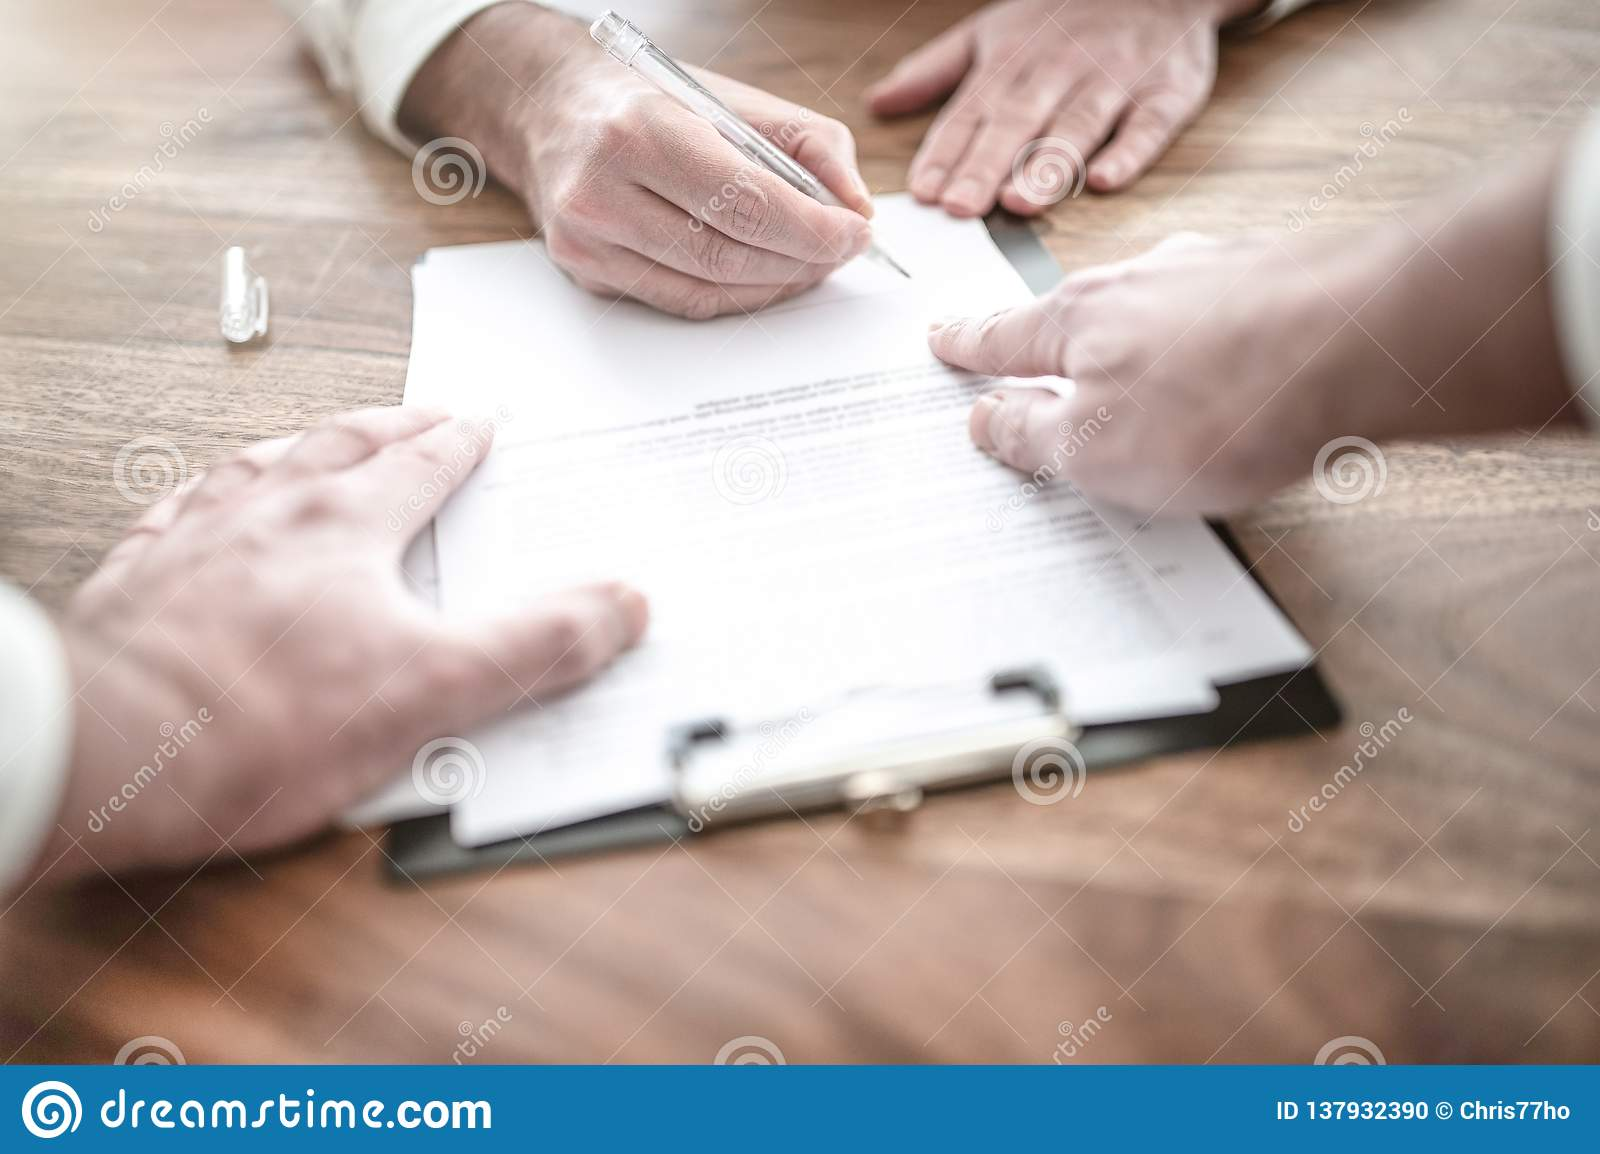 Man signing contract at wooden desk with other person pointing at document